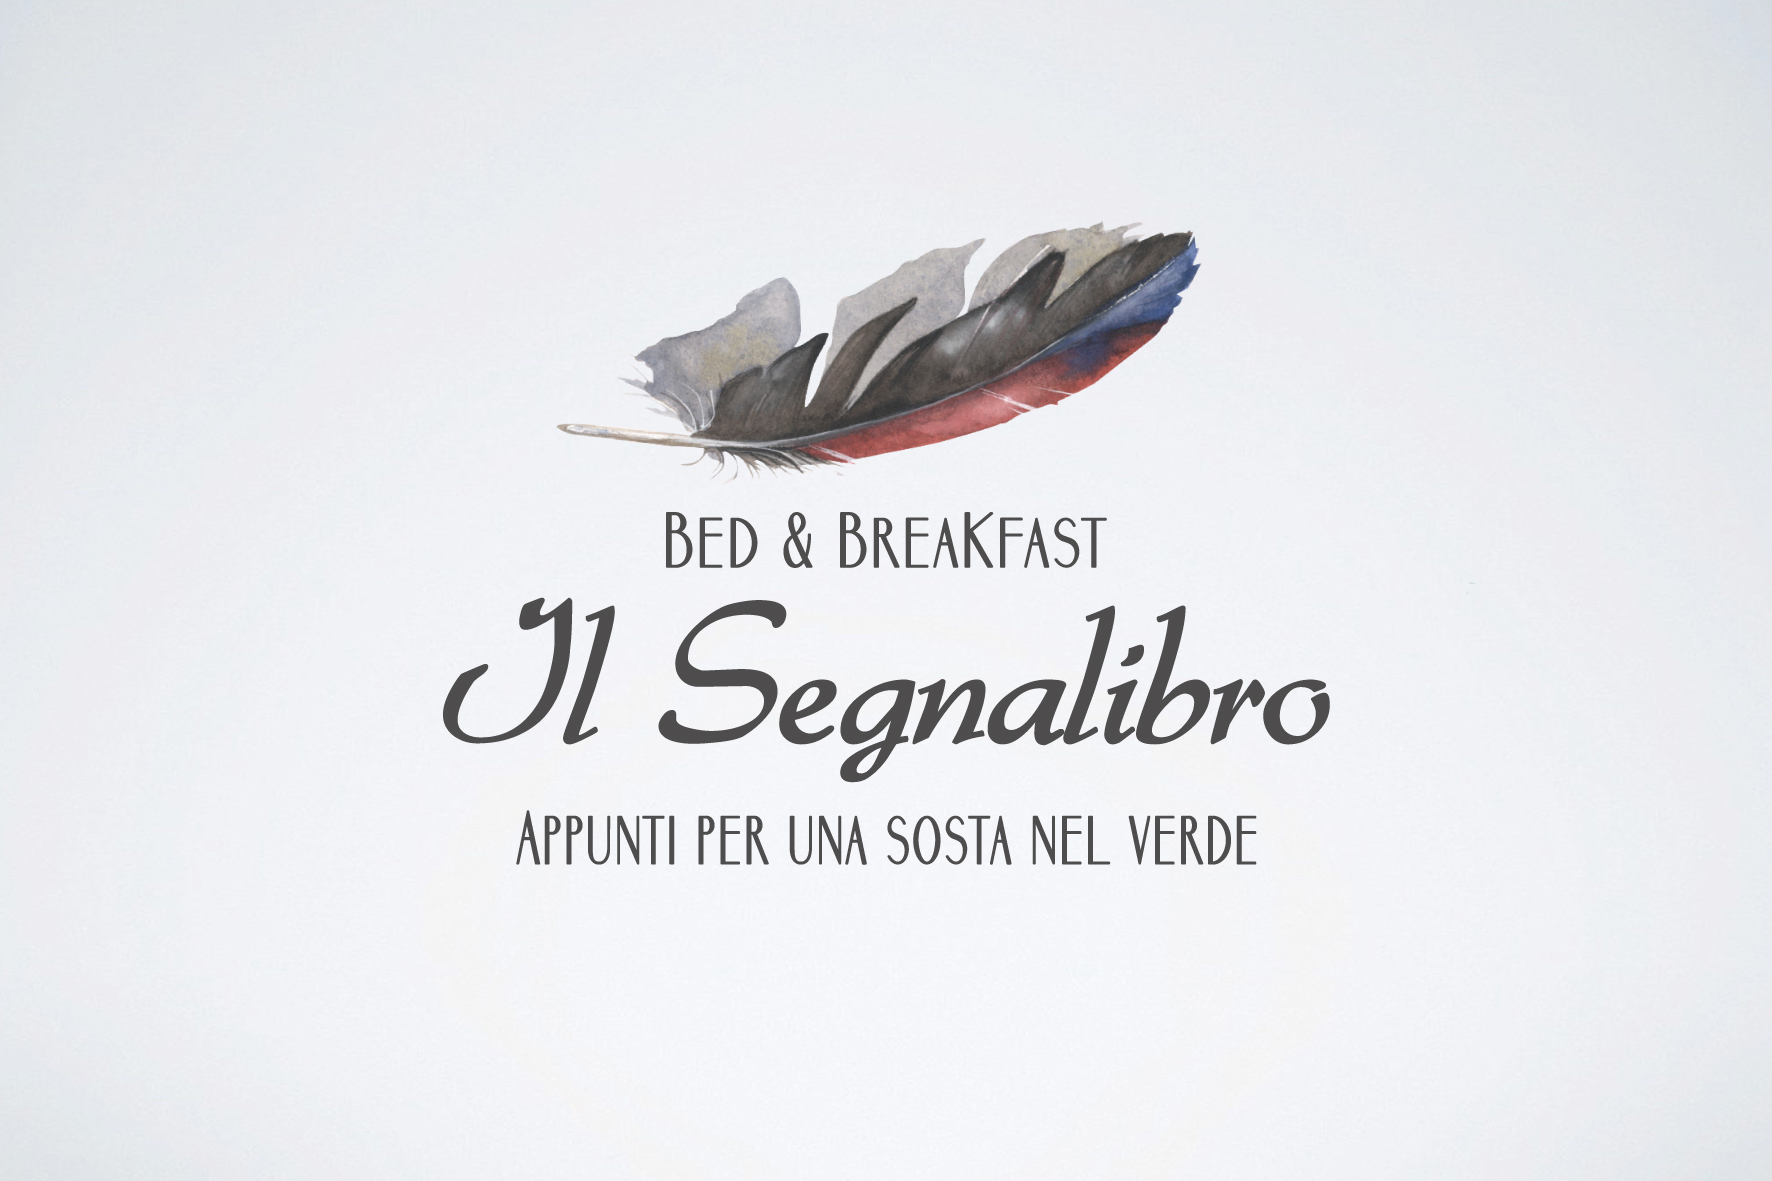 Imagotipo Il Segnalibro Bed and Breakfast realizzato da Alice Bottino Visual Designer